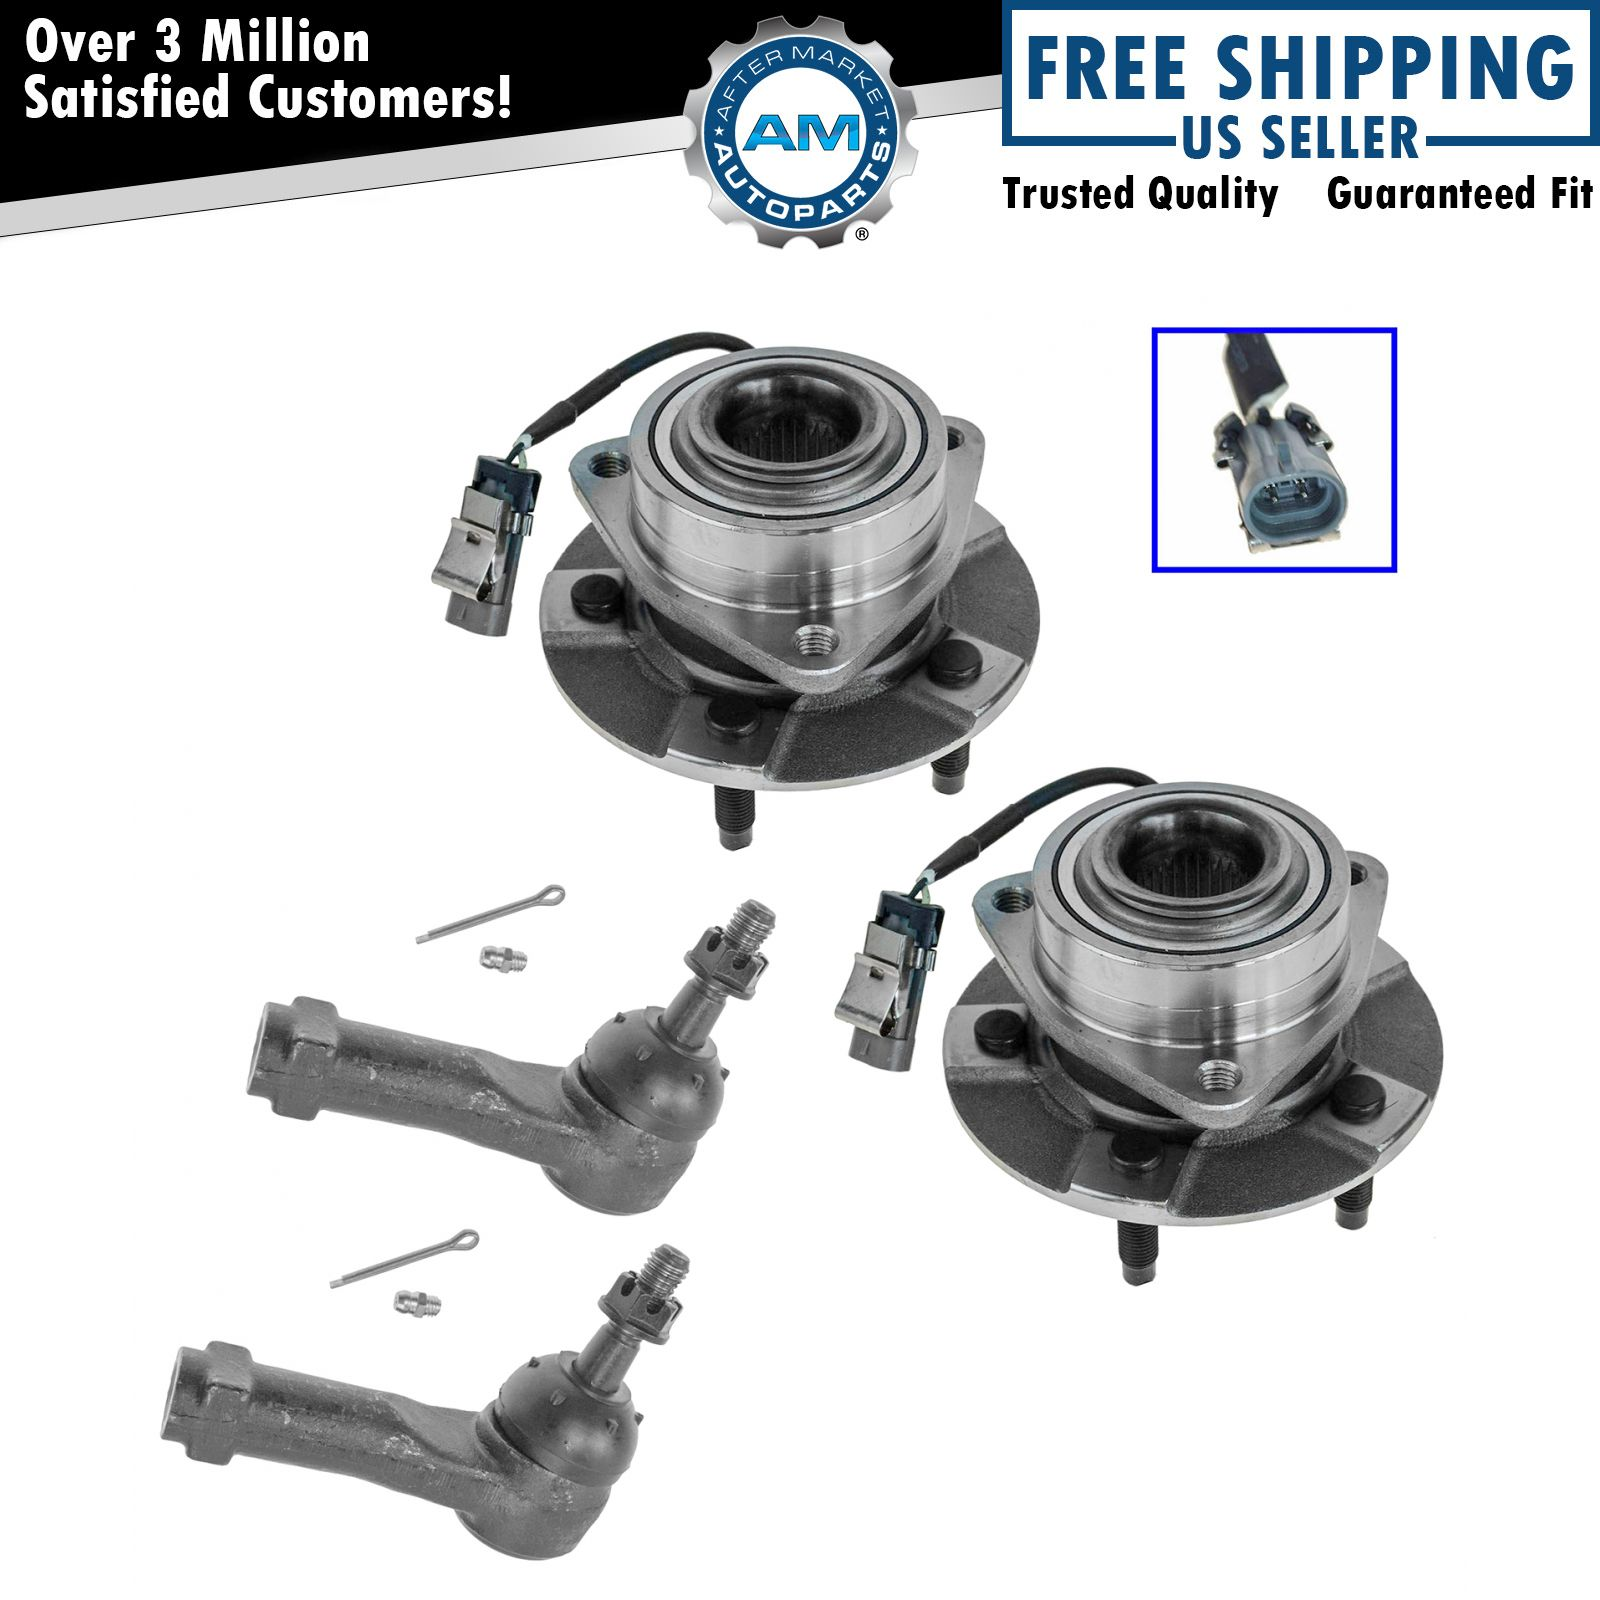 4 Piece Kit Outer Tie Rod End Wheel Bearing Hub Assembly LH RH for 02-05 Liberty